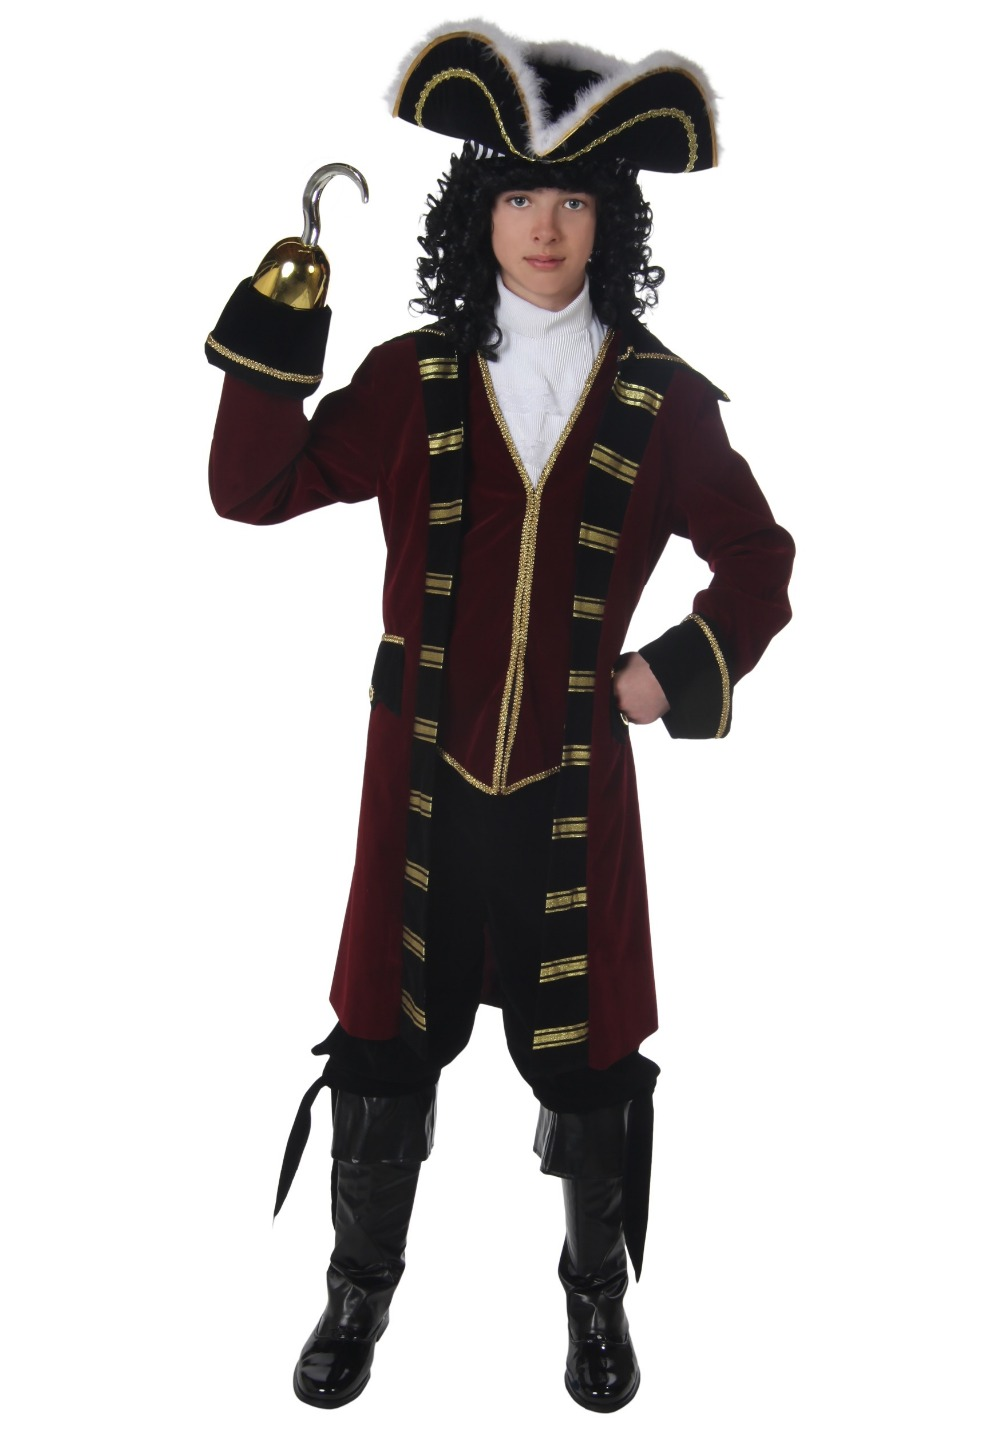 Compare Prices on Pirate Cosplay- Online Shopping/Buy Low Price ...